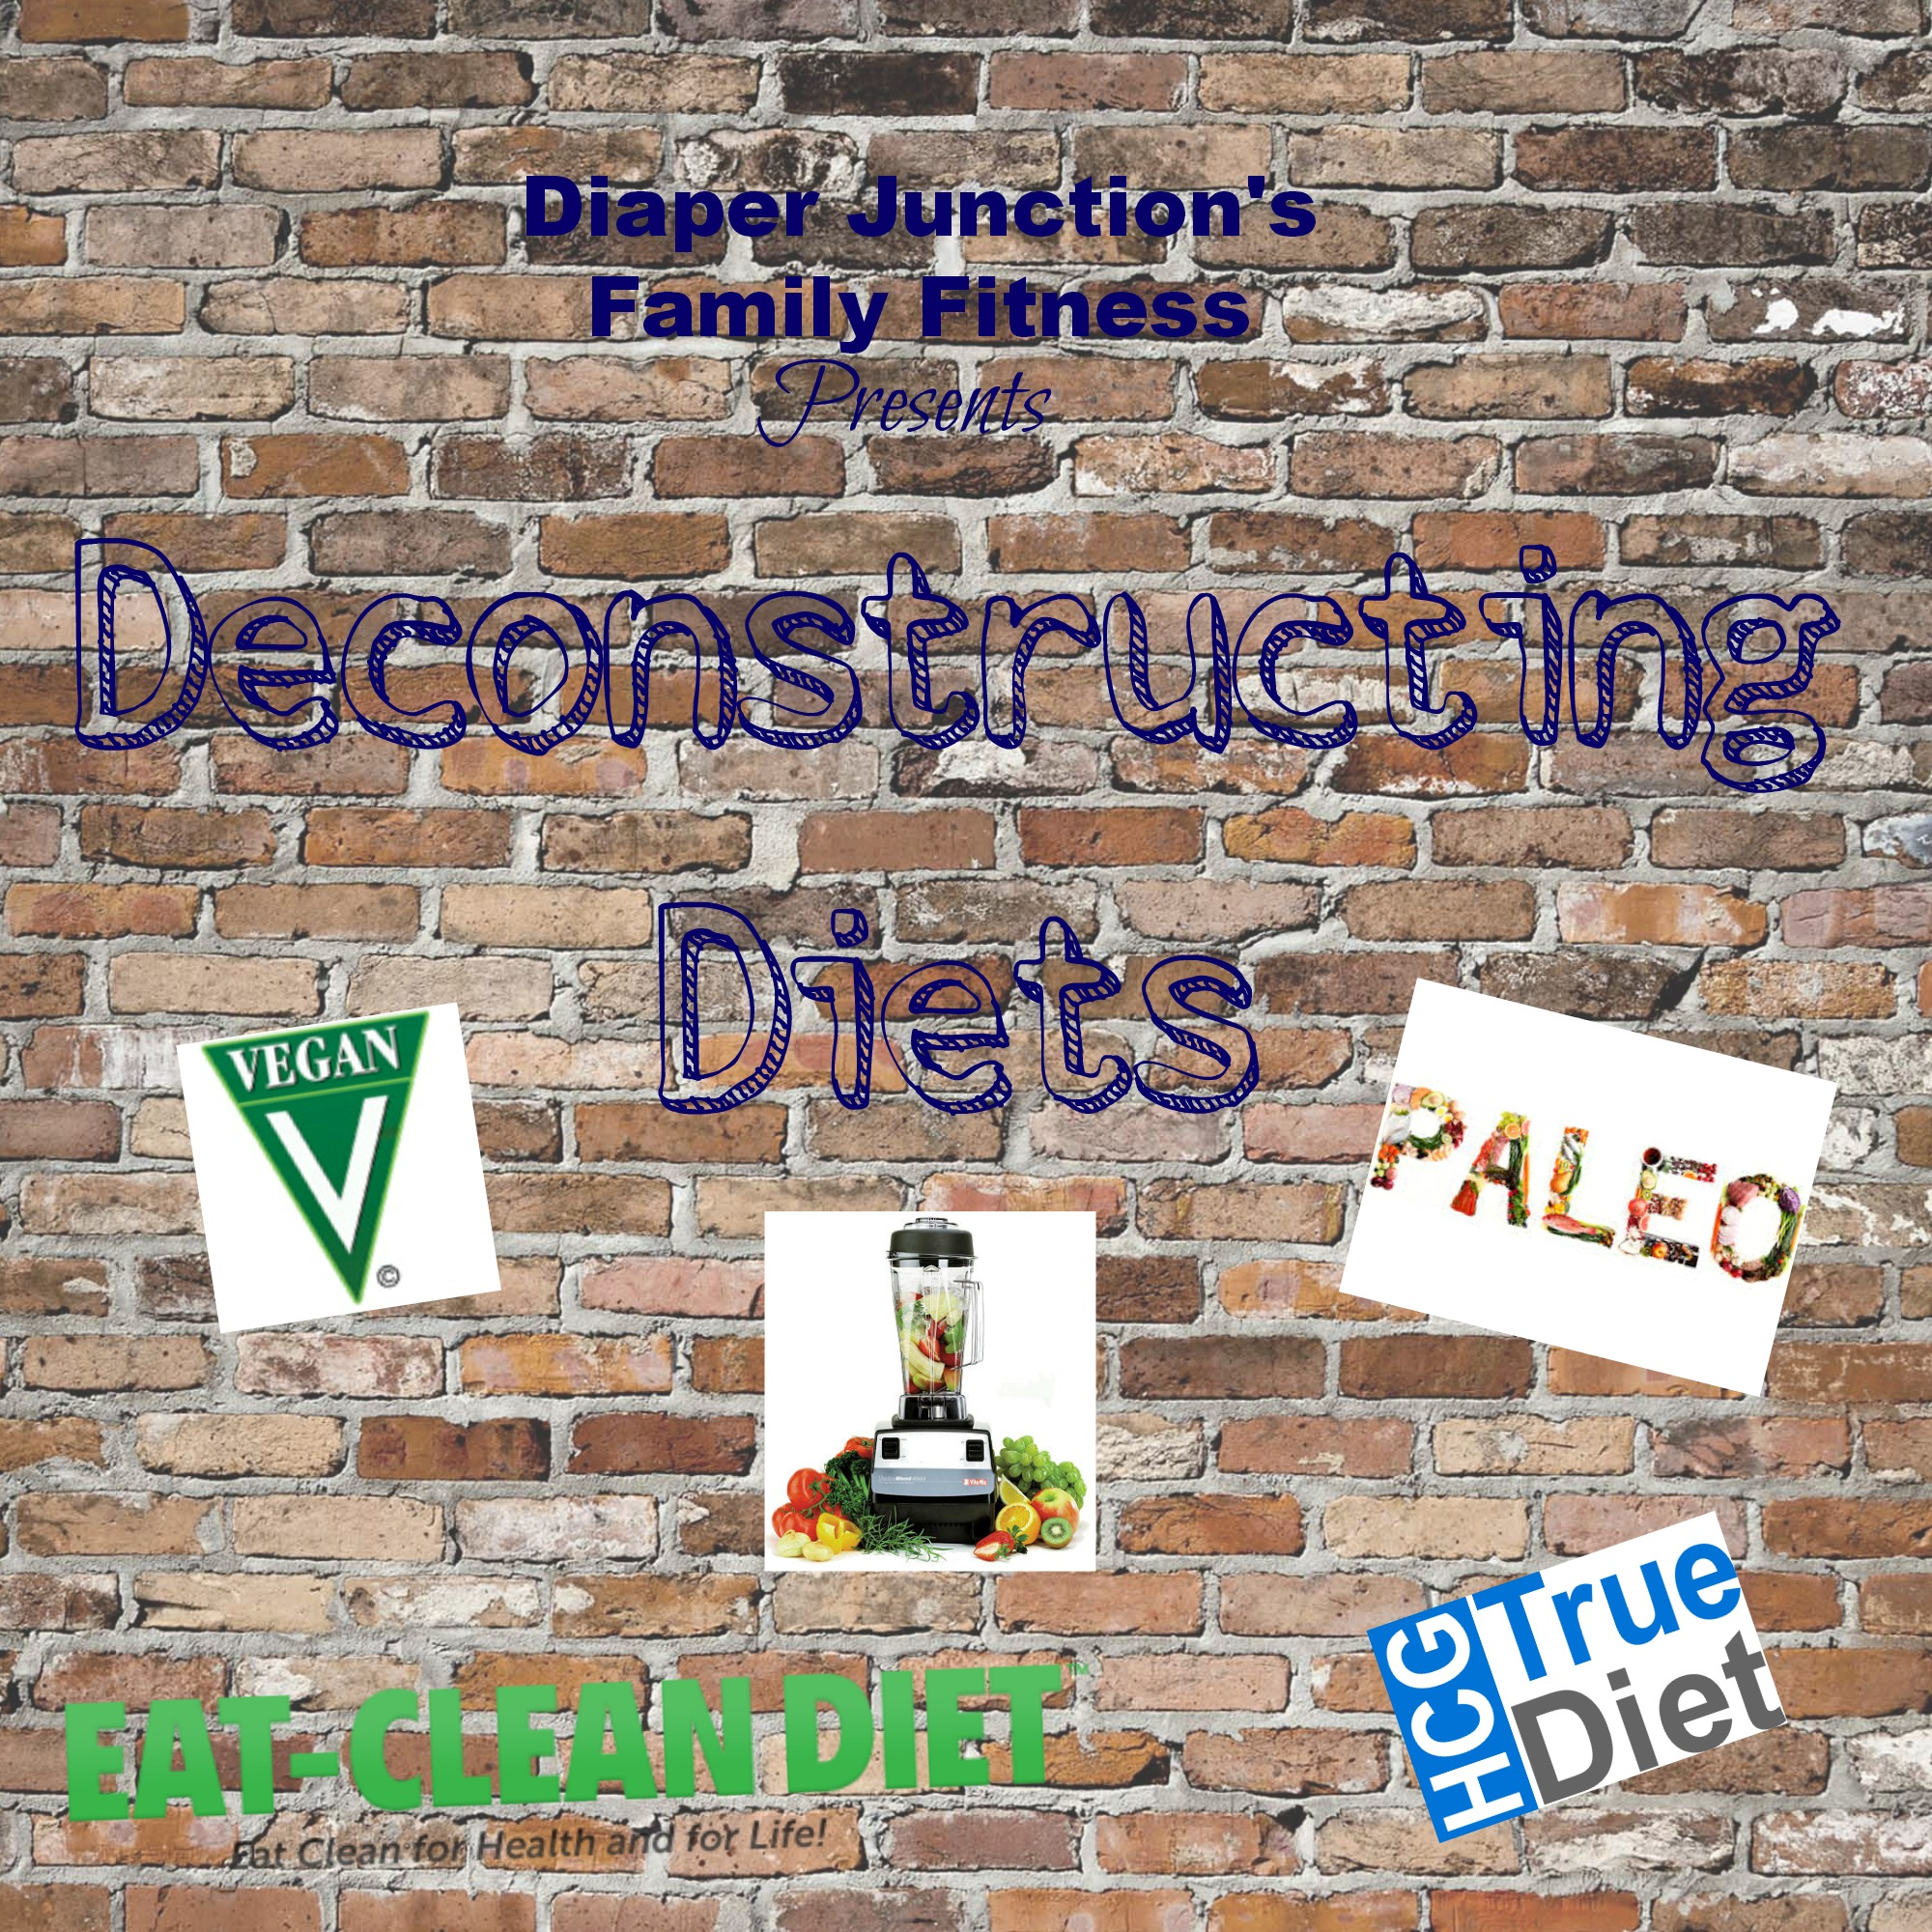 paleo,diet,fitness,health